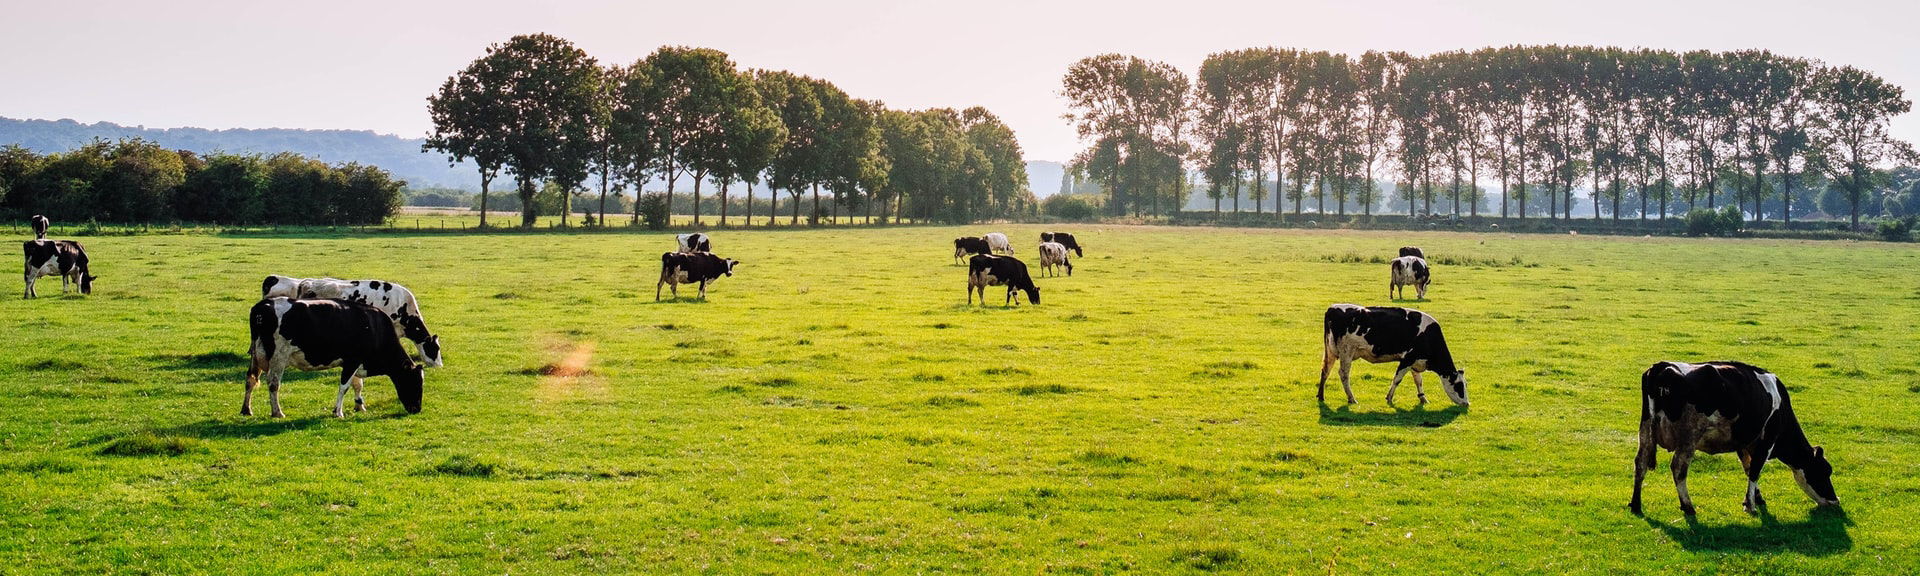 Cows grazing in a green pasture.